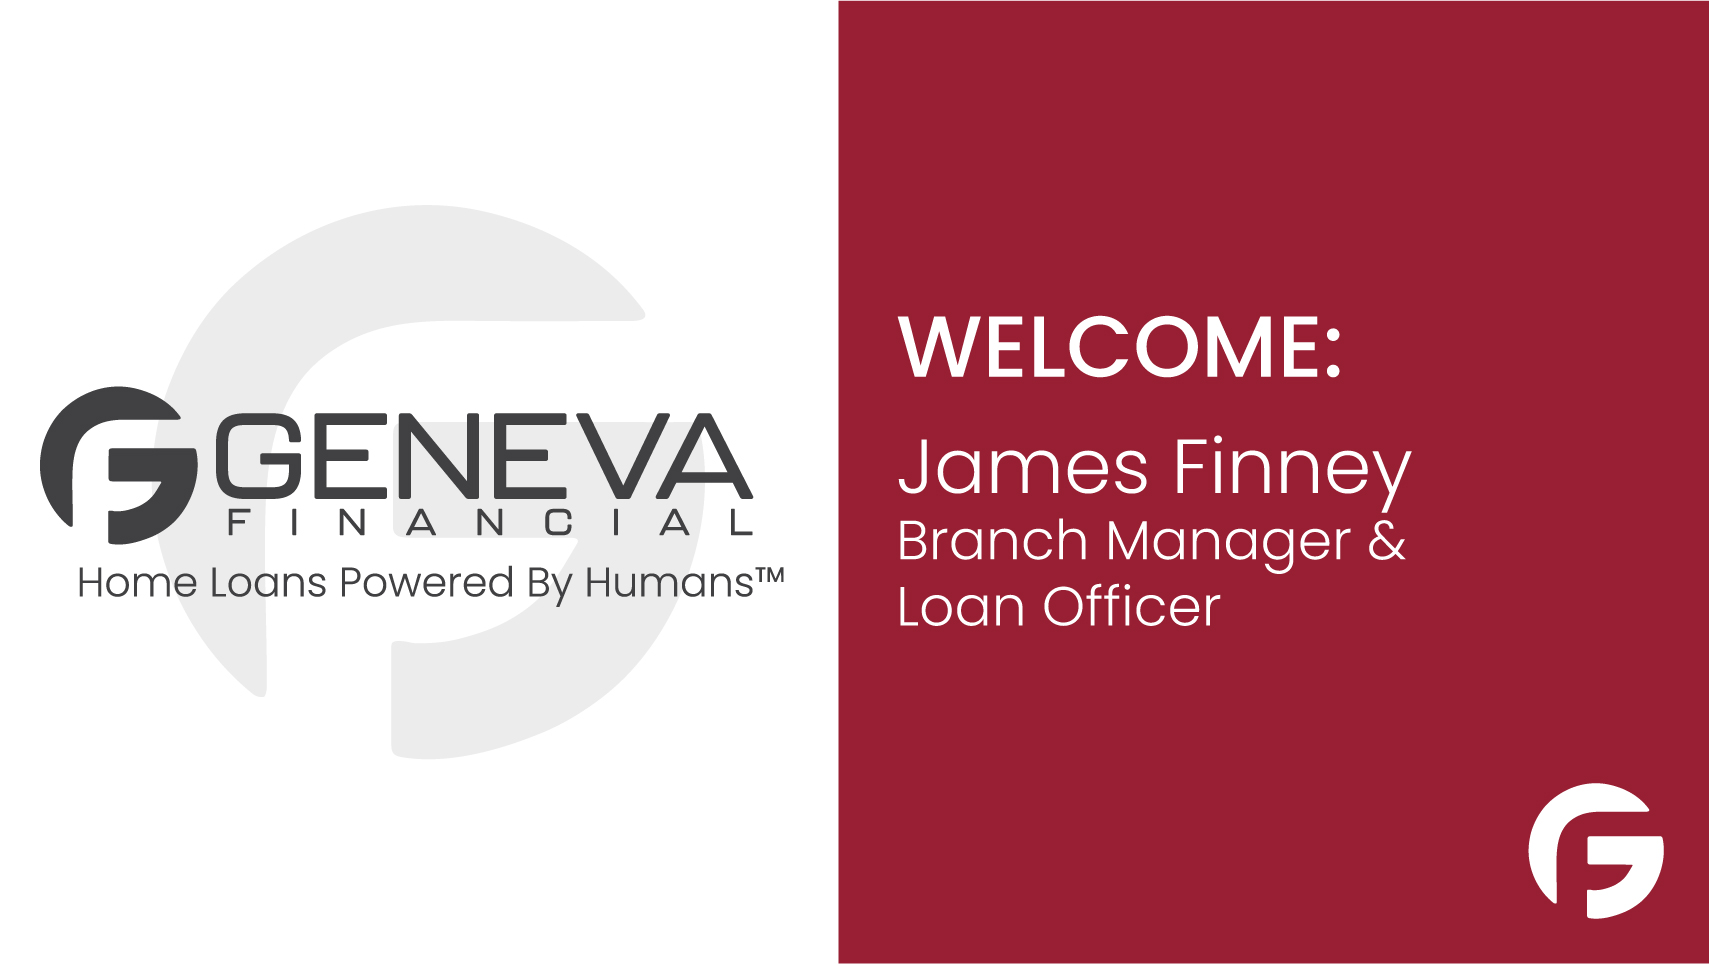 James Finney, Branch Manager and Loan Officer serving the state of Washington